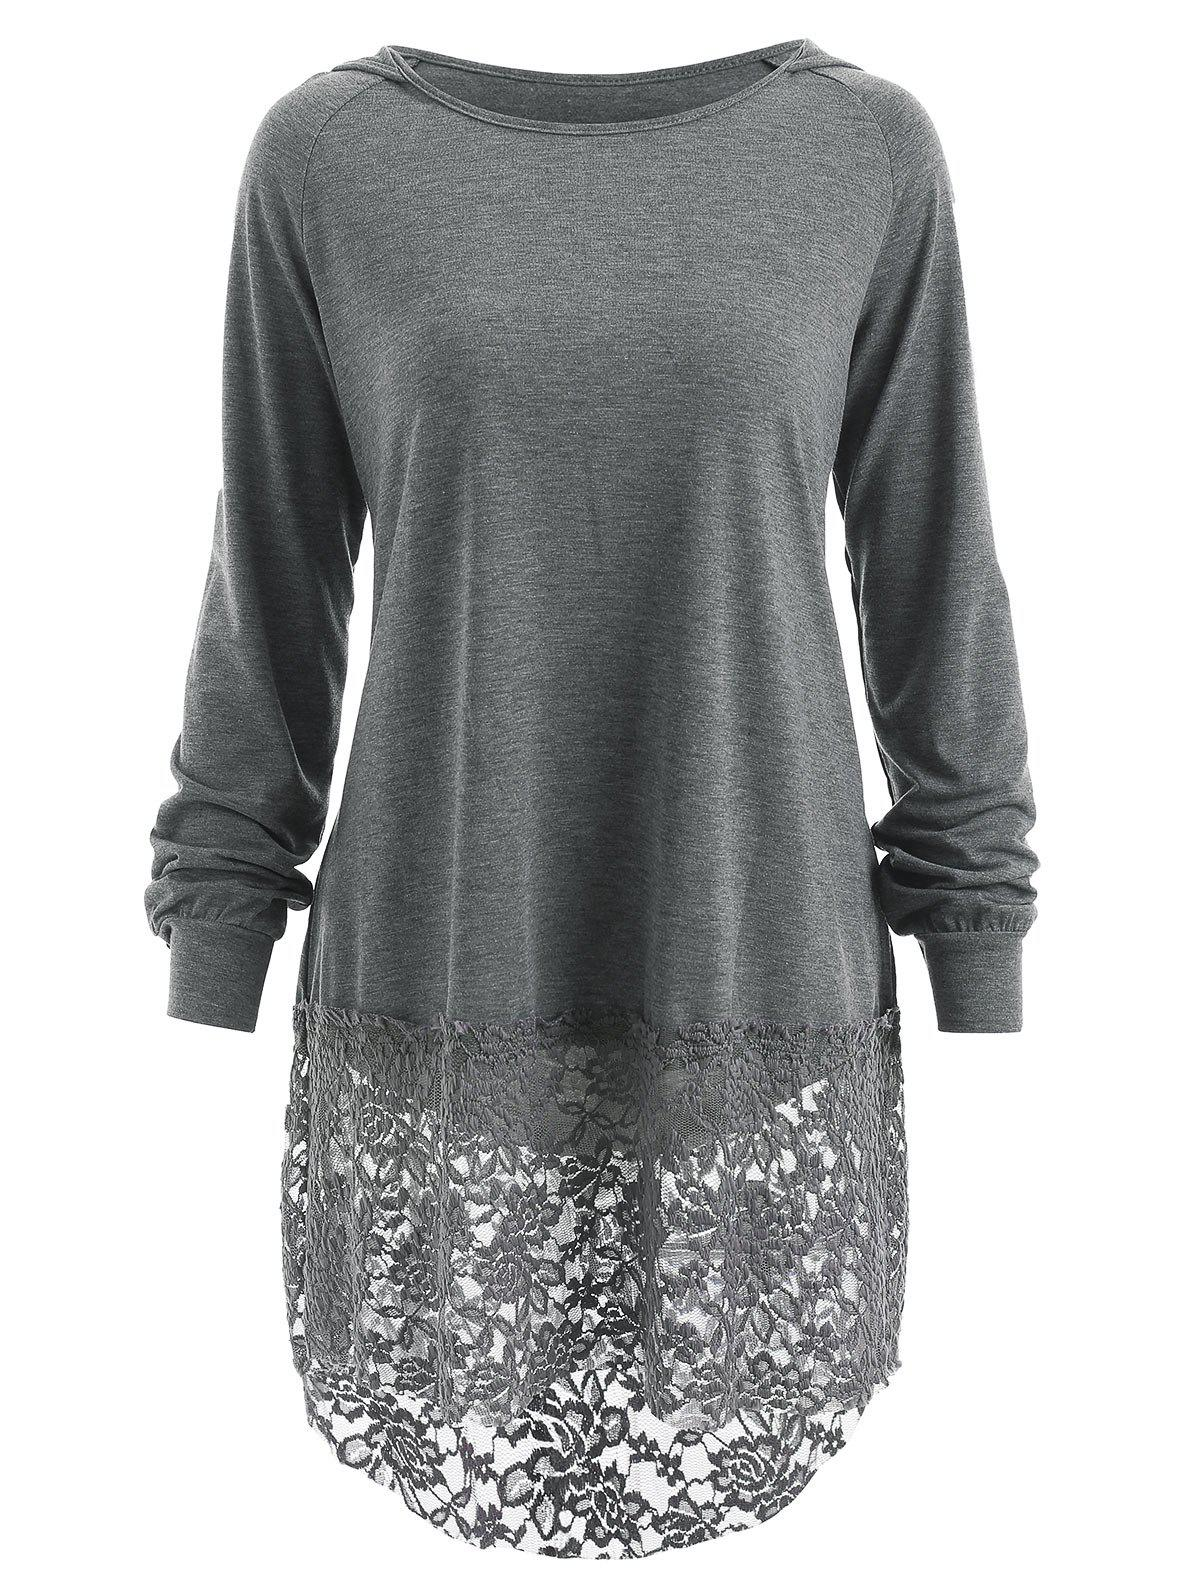 Long Sleeve Lace Panel Hooded T-shirt, Gray